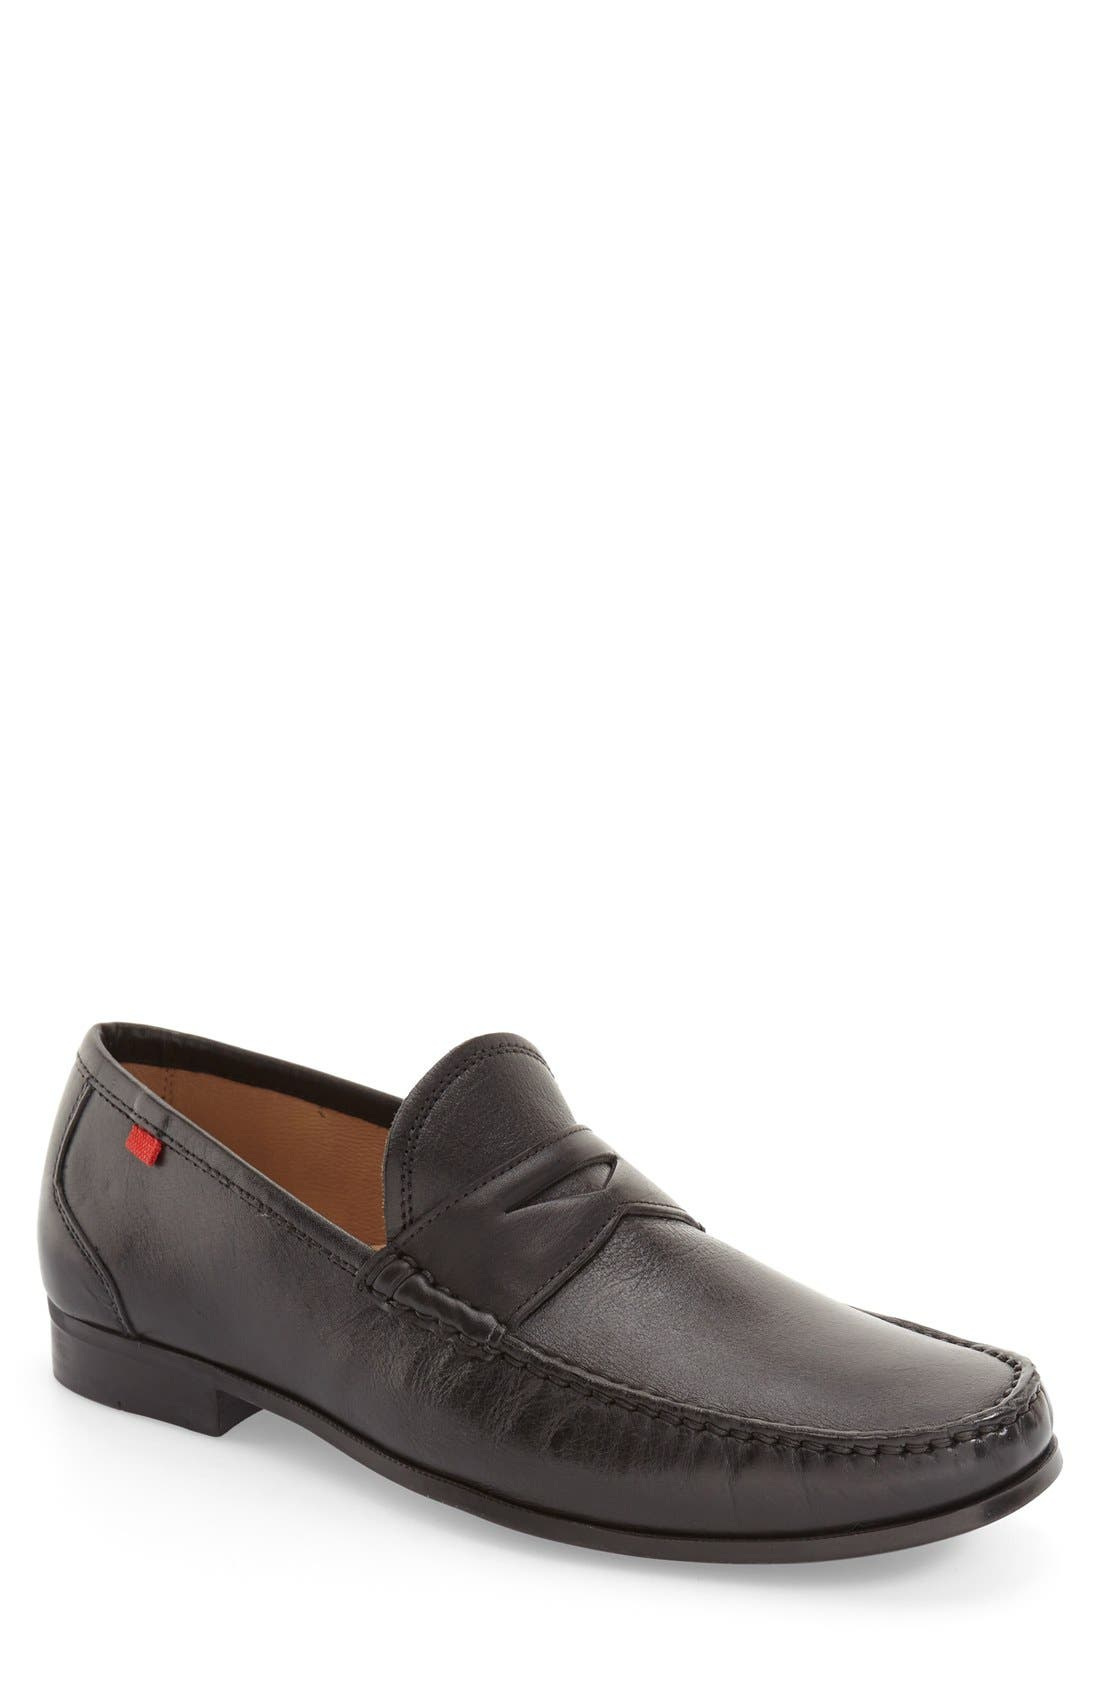 Marc Joseph New York Penny Loafer (Men)